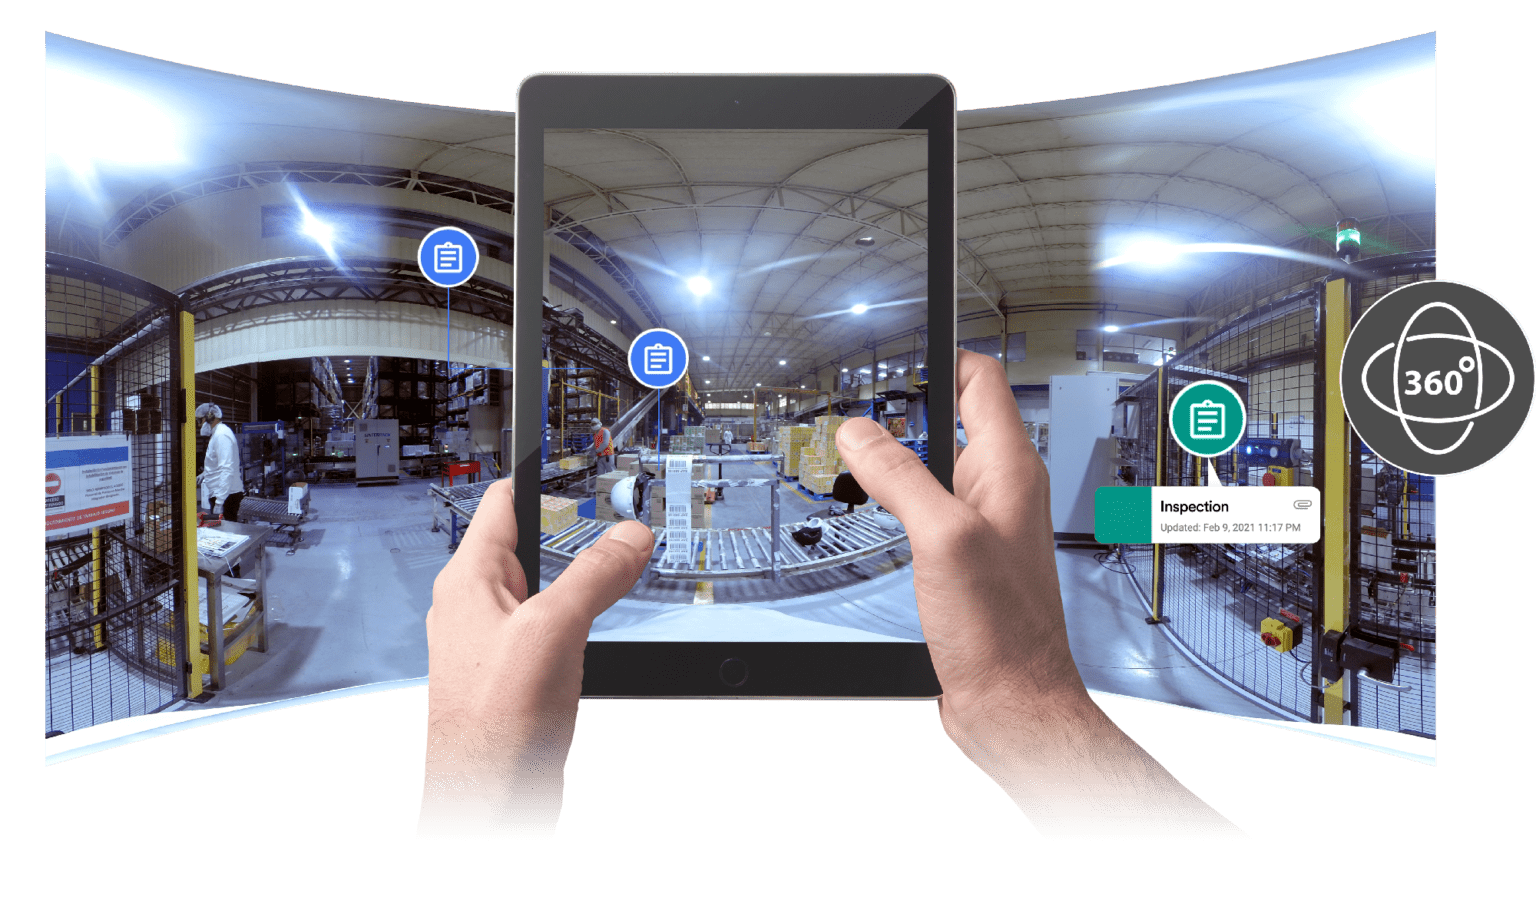 360 Photo Viewer of Manufacturing Facility on Tablet